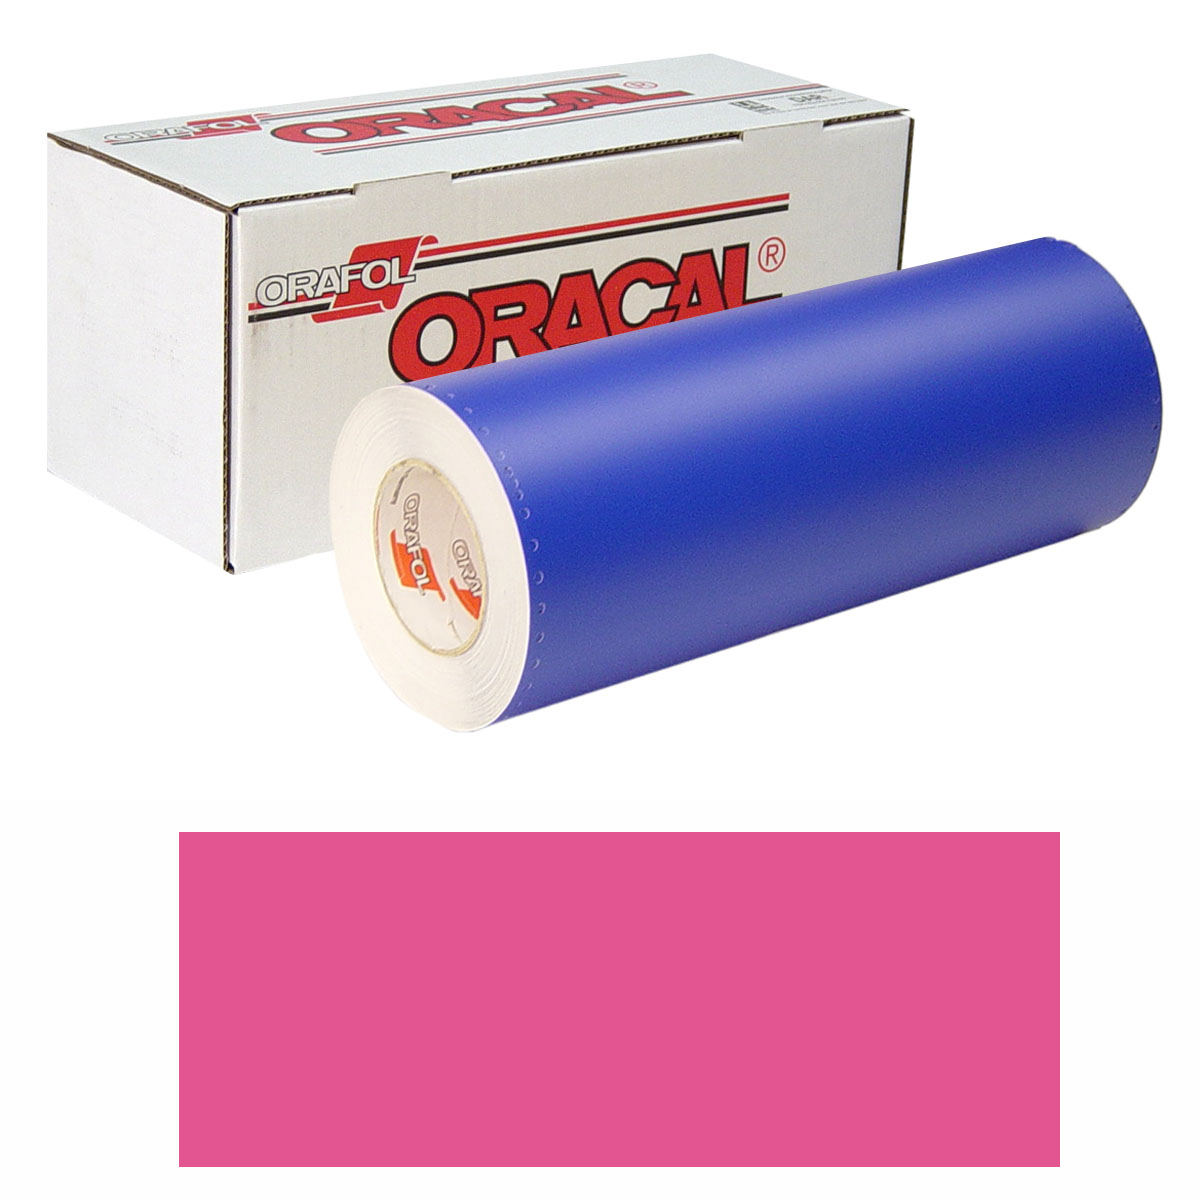 ORACAL 8300 Unp 24In X 50Yd 041 Pink